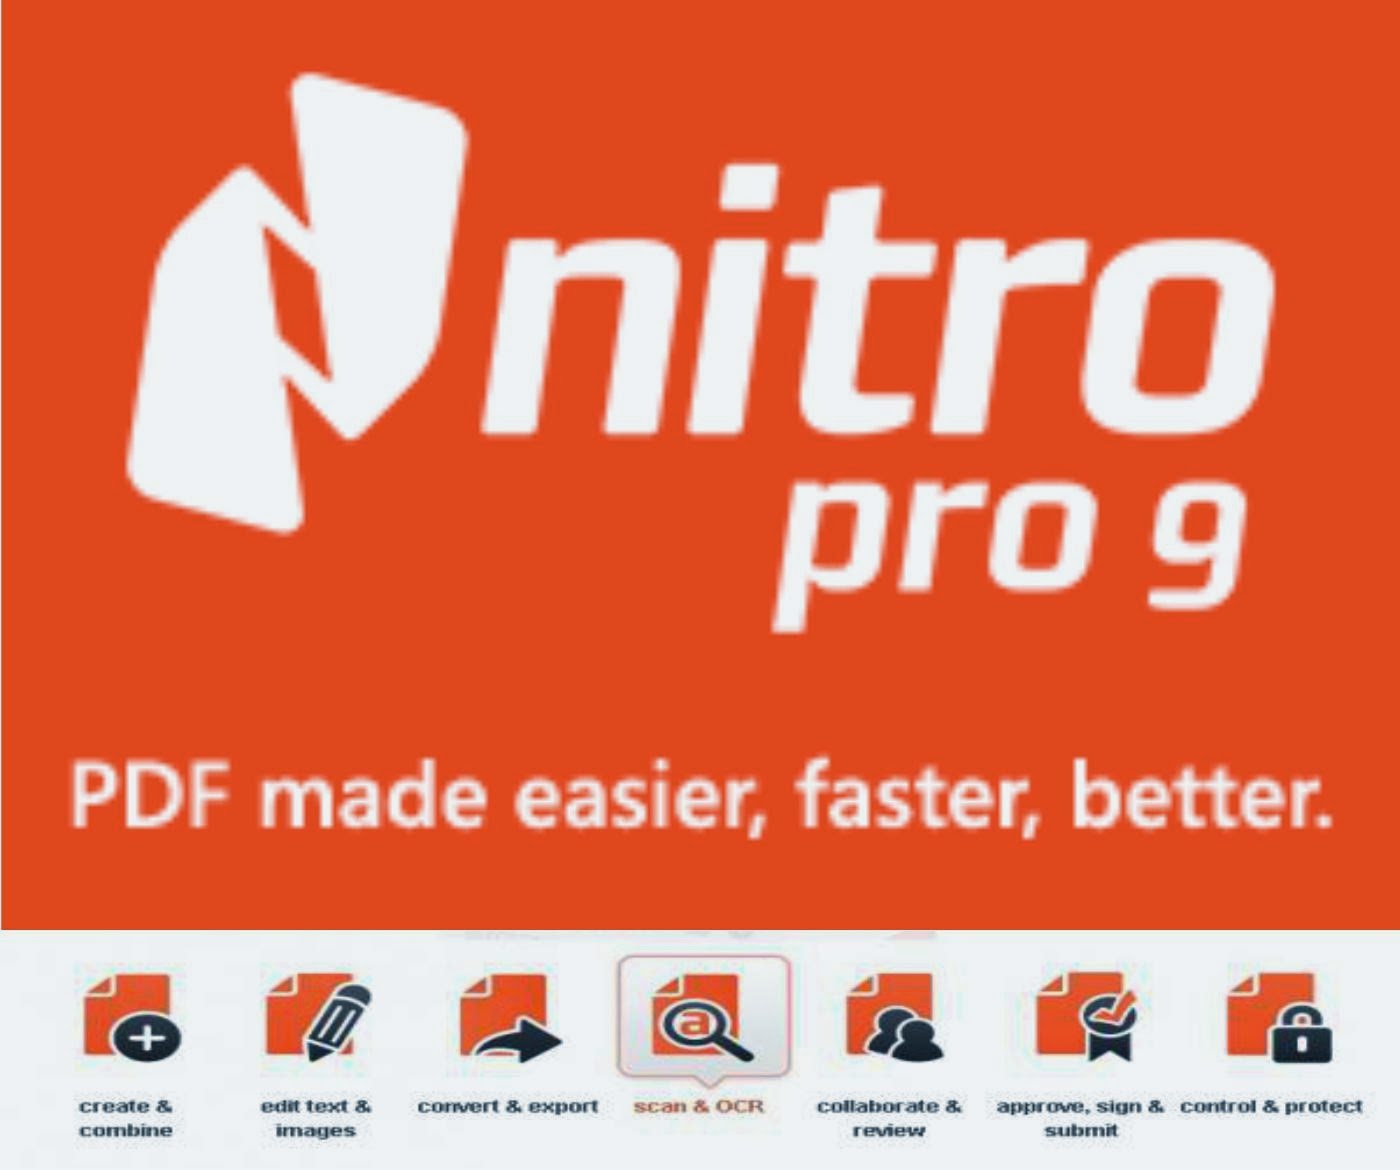 nitro 9 free download with crack